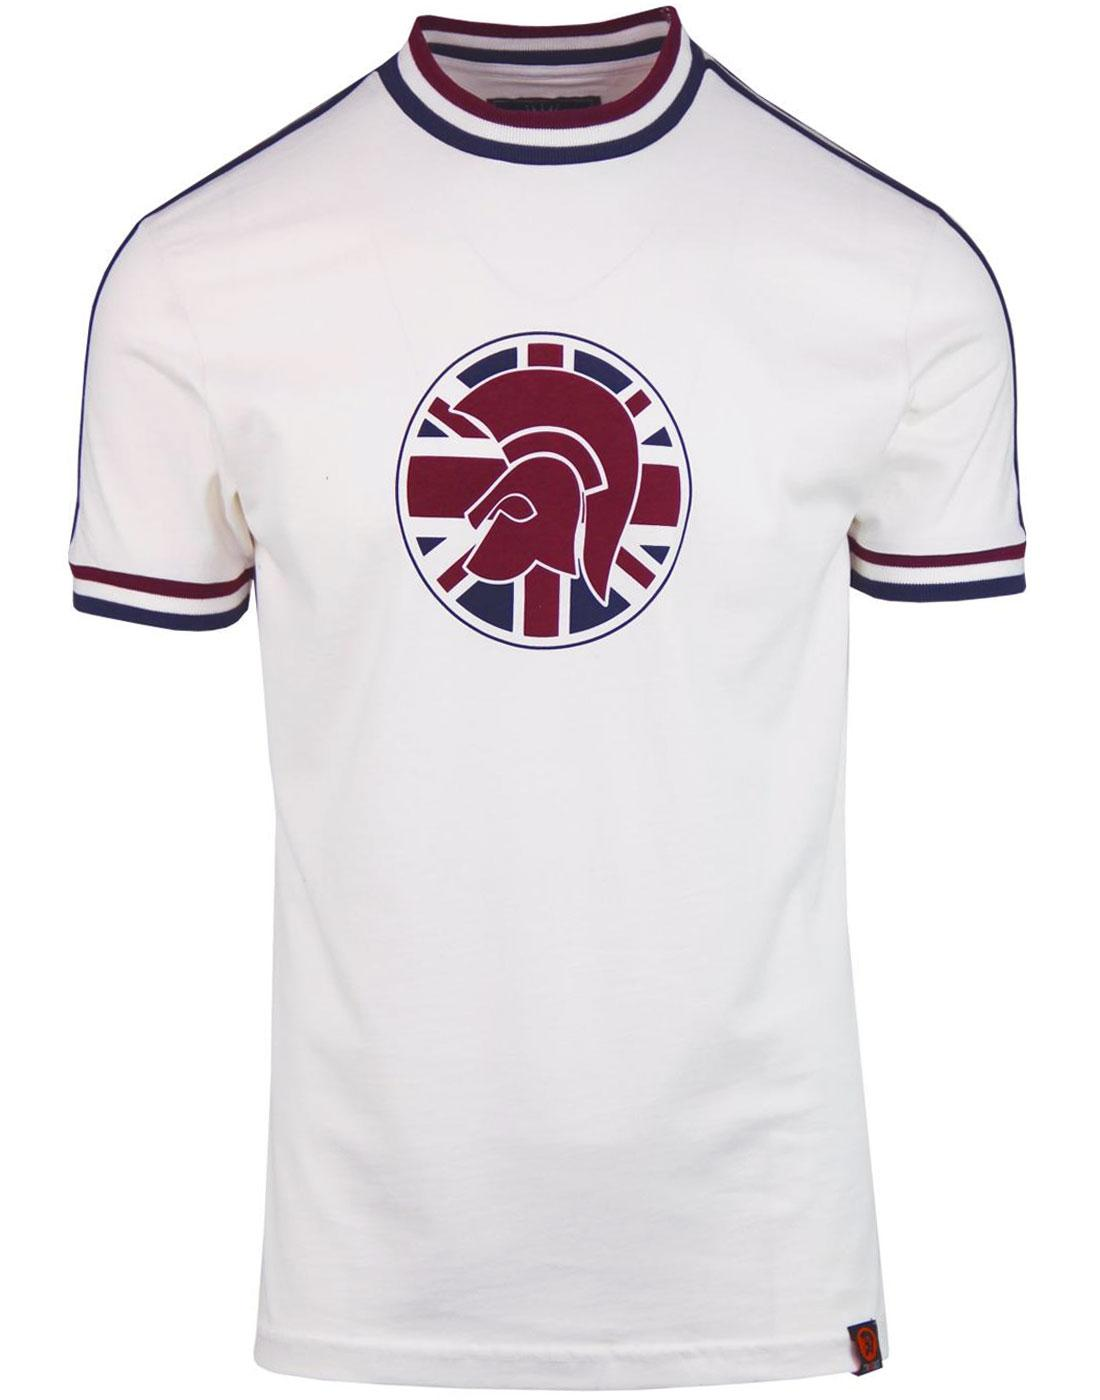 TROJAN RECORDS Retro Mod Union Jack Stripe T-Shirt